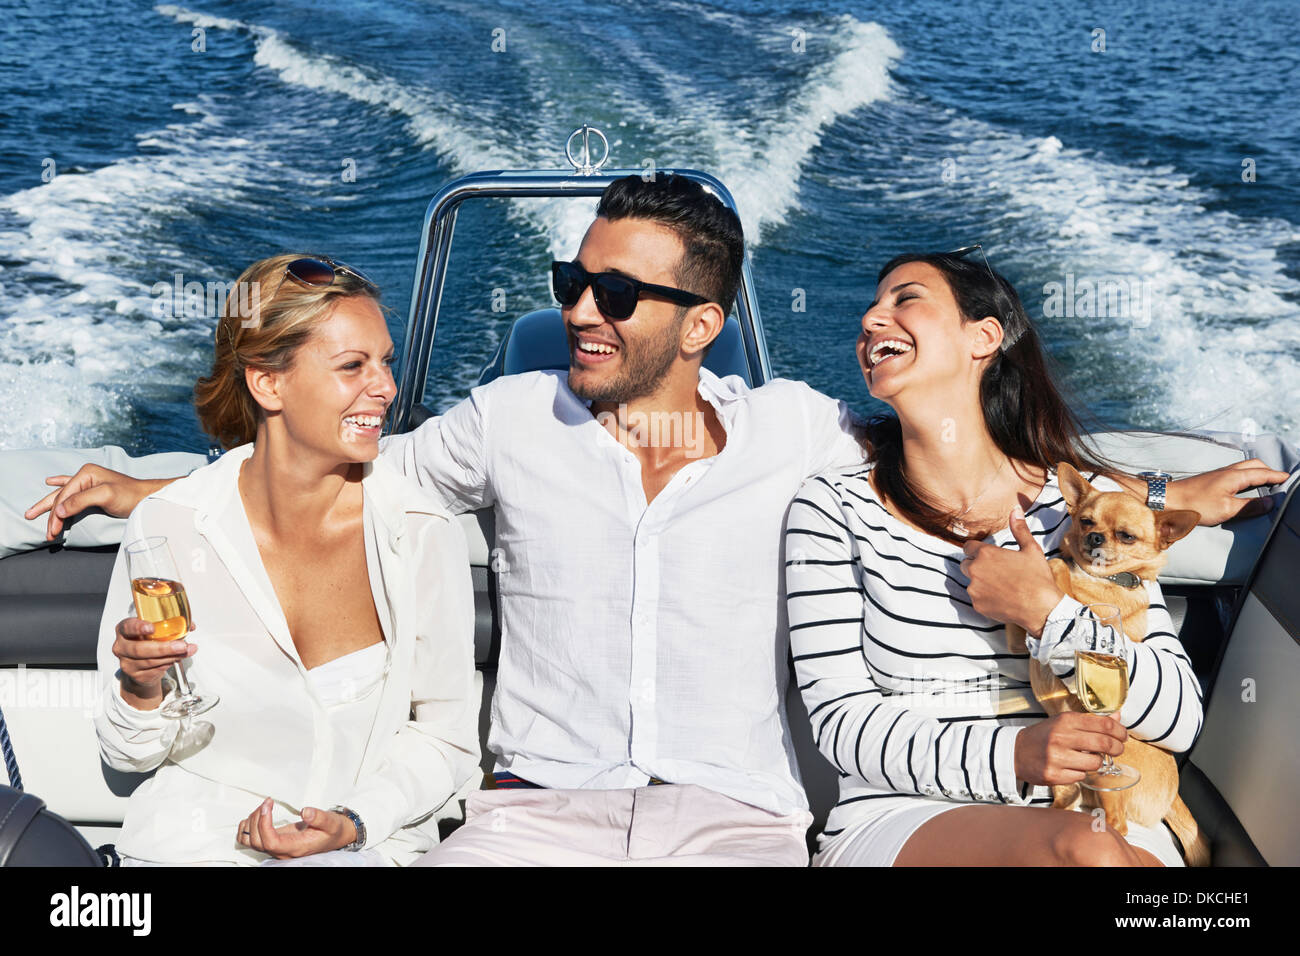 Young man on boat with arms around women, Gavle, Sweden - Stock Image